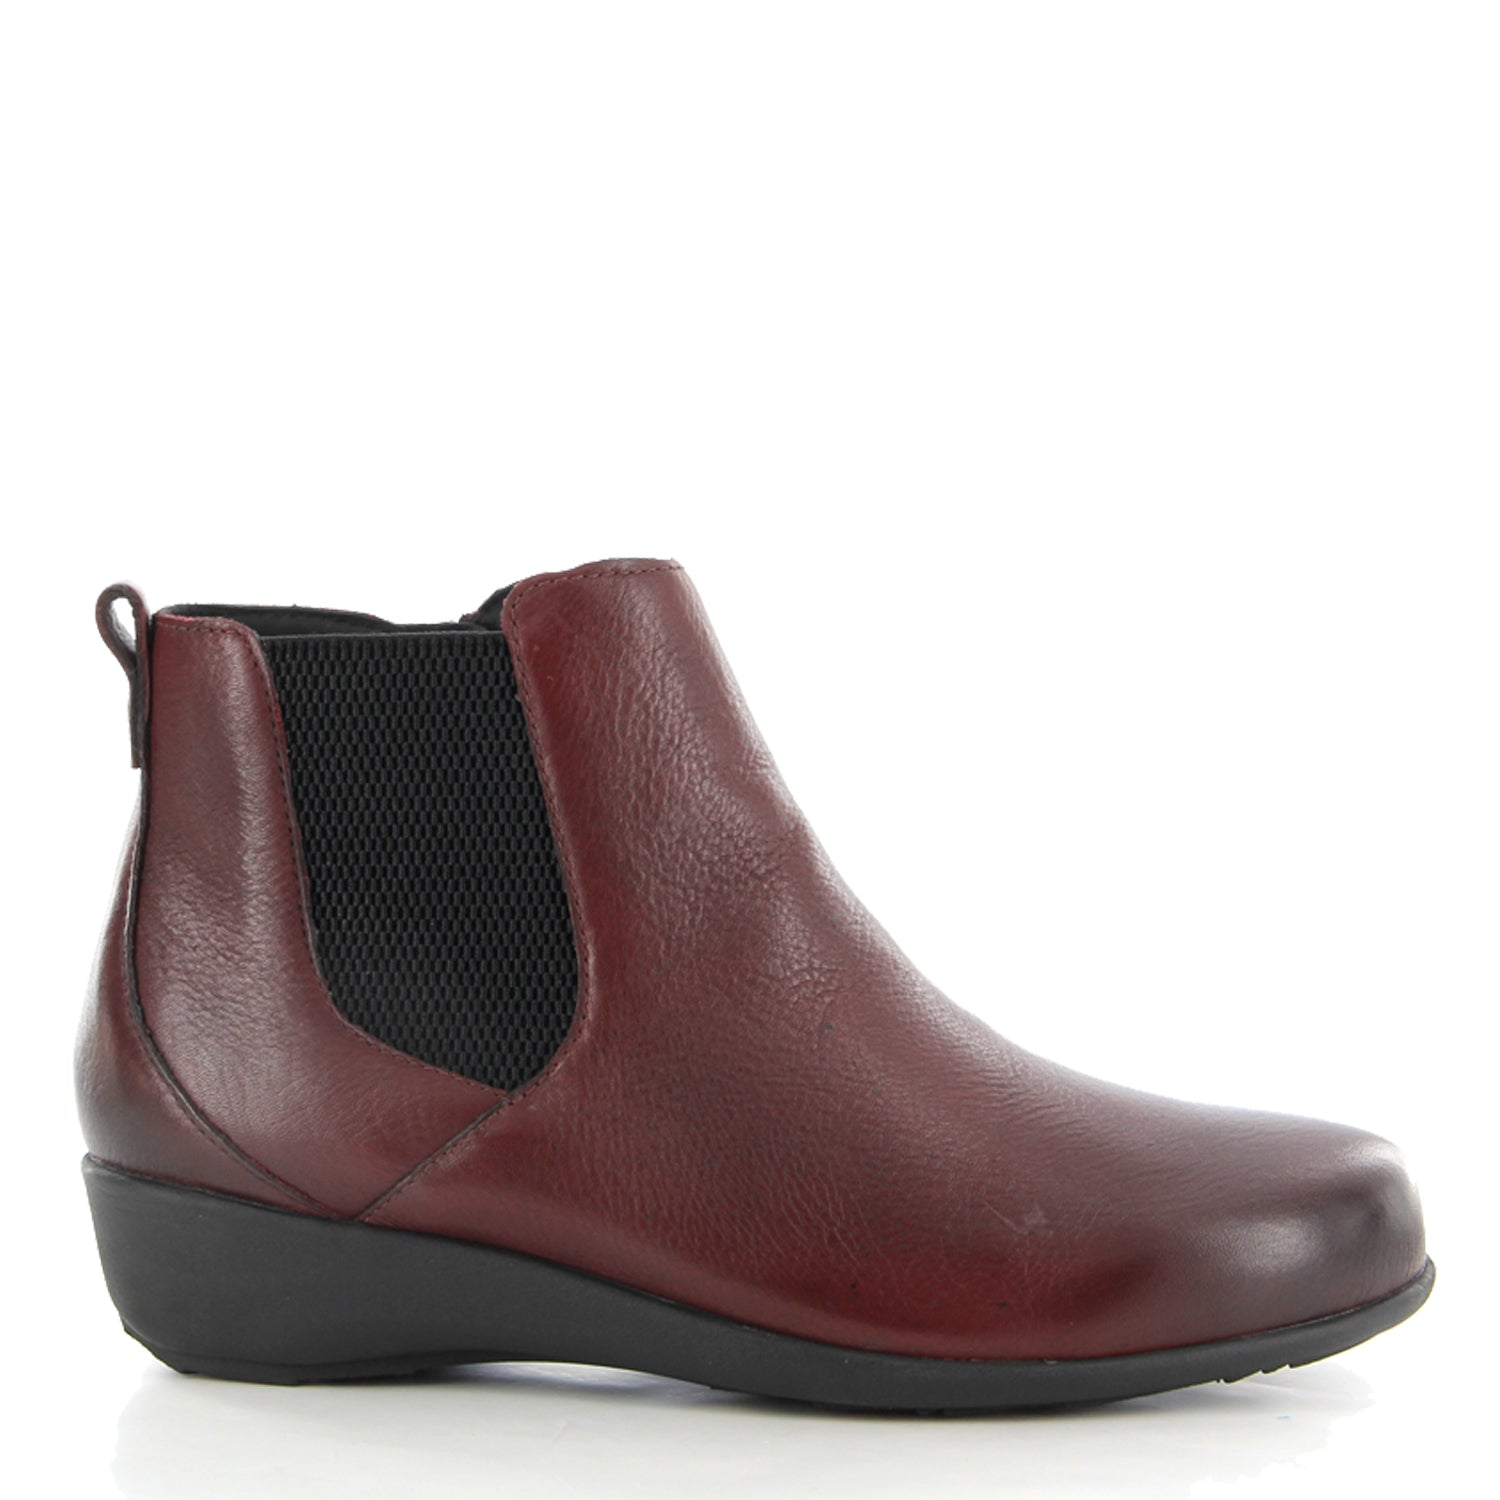 e3551800d531 Shop Boots Online - Ian s Shoes for Women